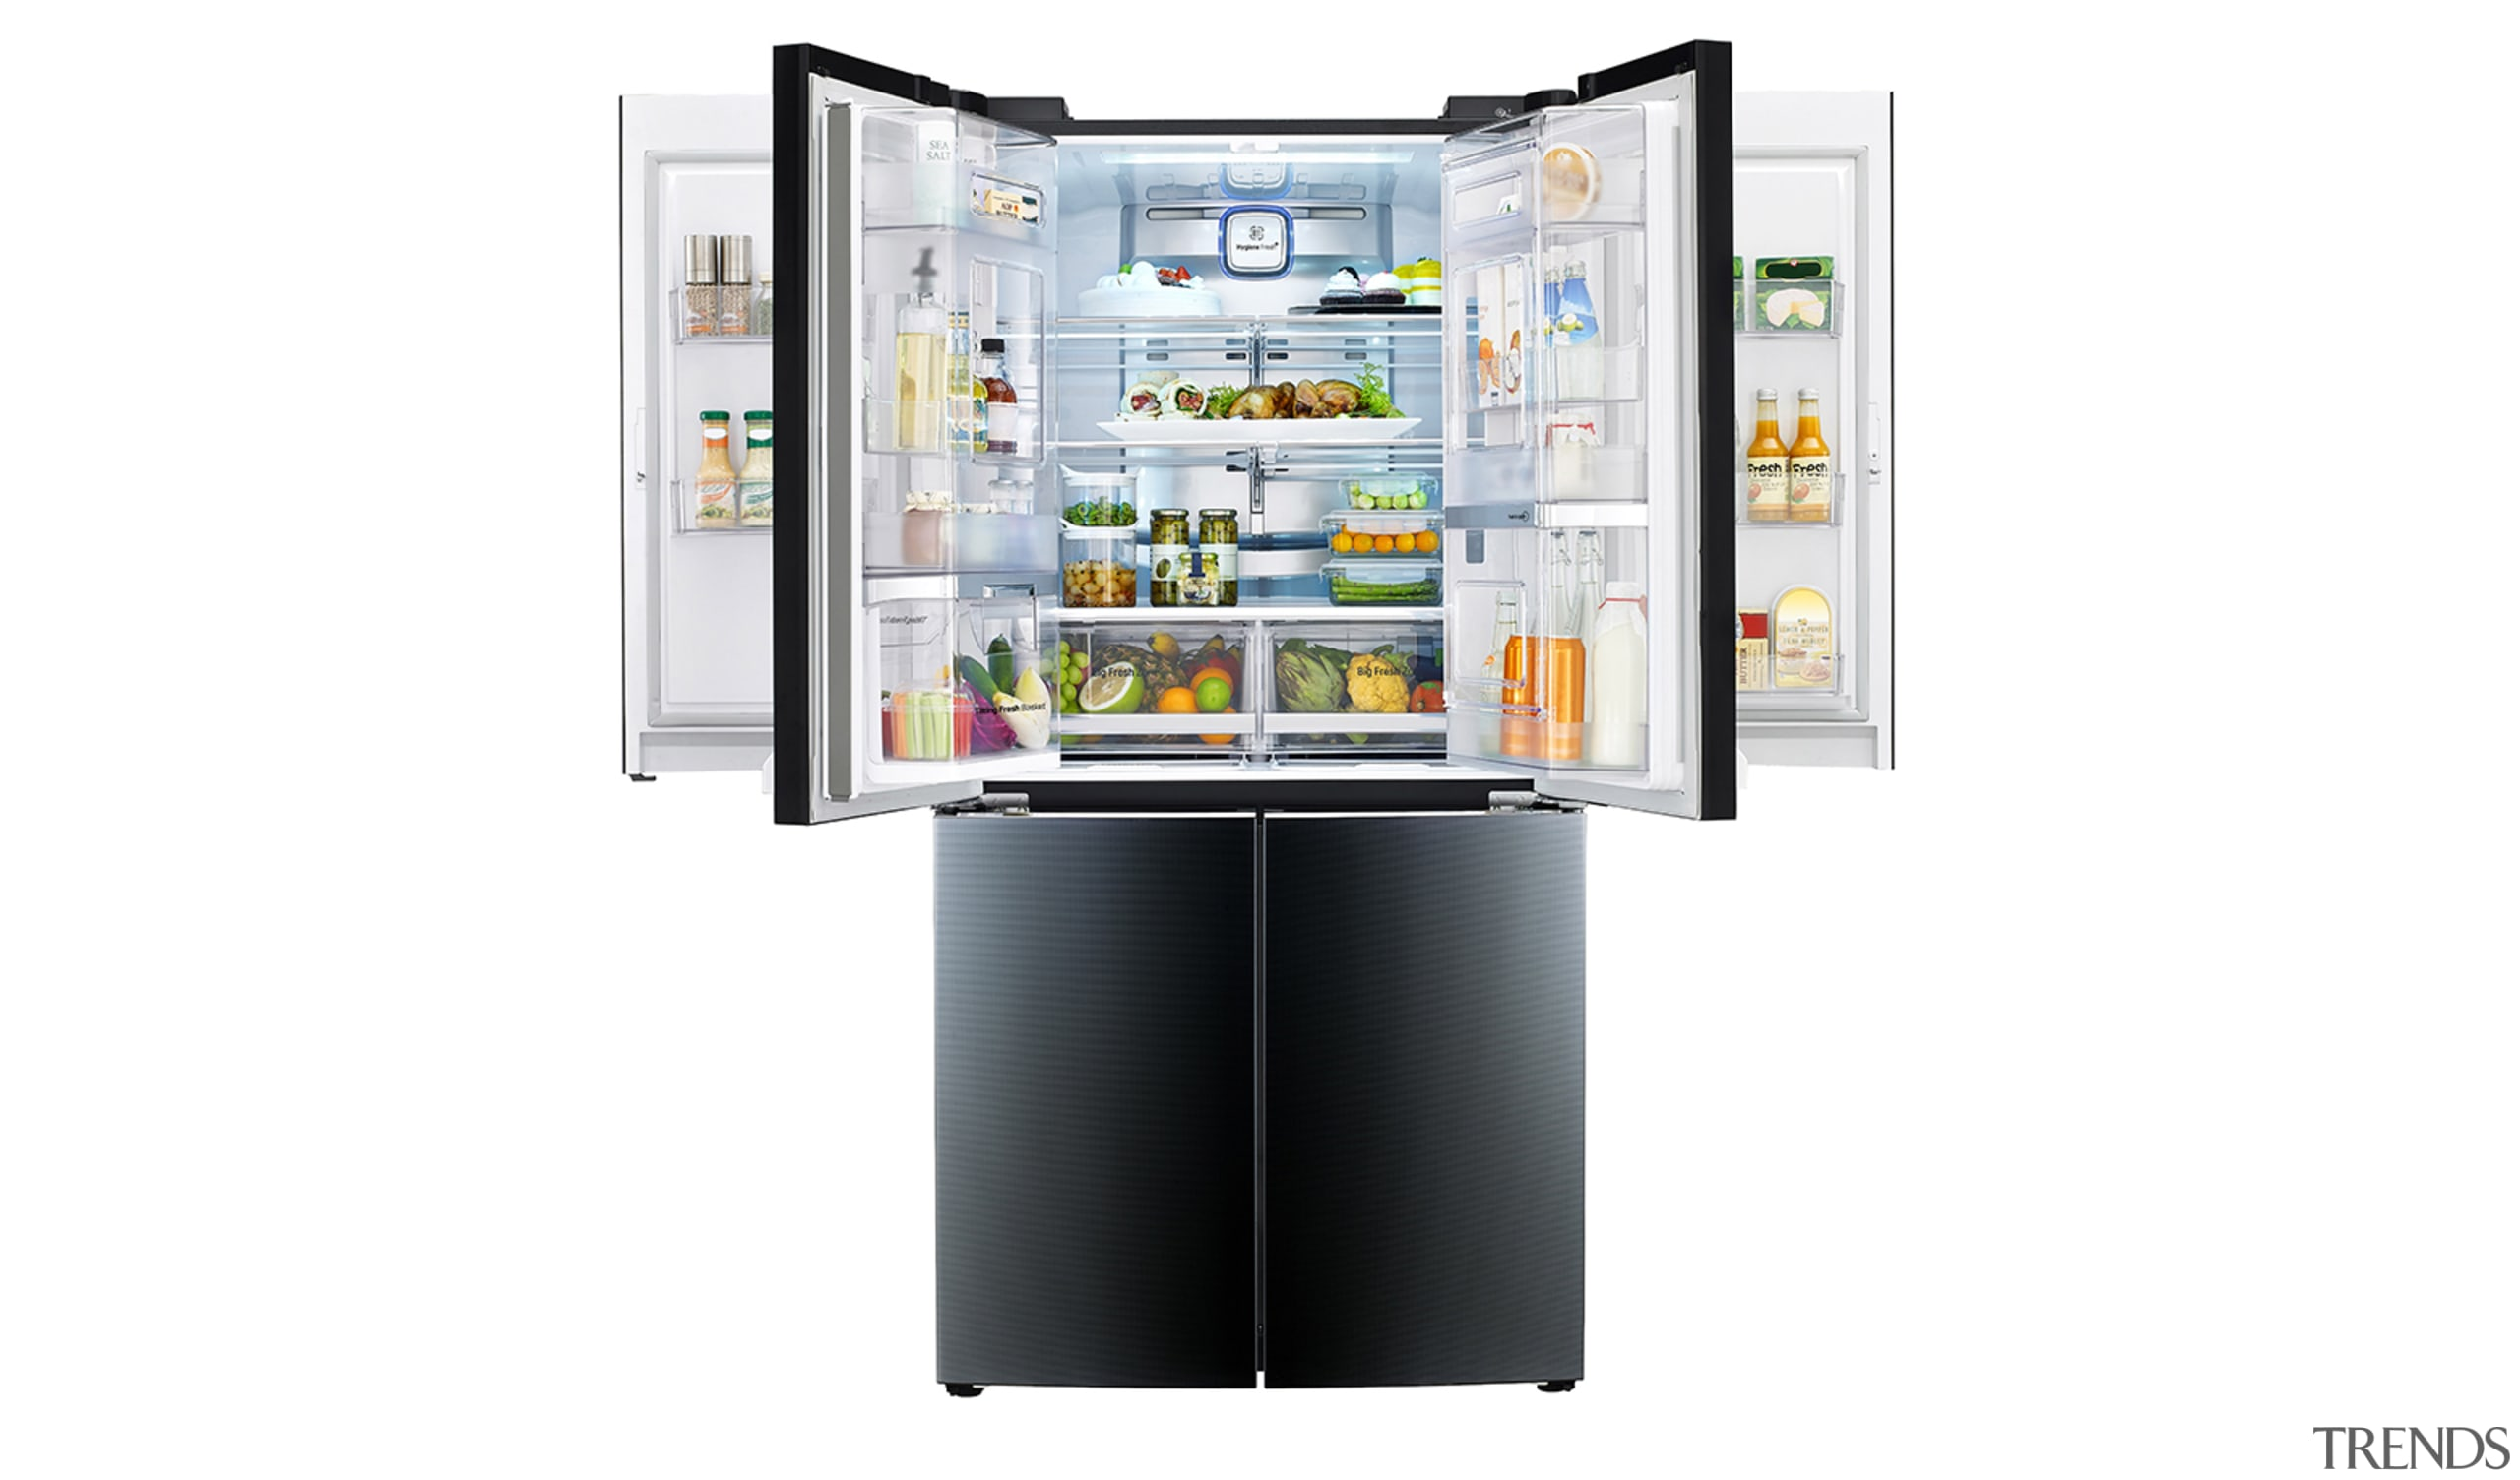 The LG Dual Door-in-door fridge - home appliance home appliance, interactive kiosk, kitchen appliance, major appliance, product, refrigerator, white